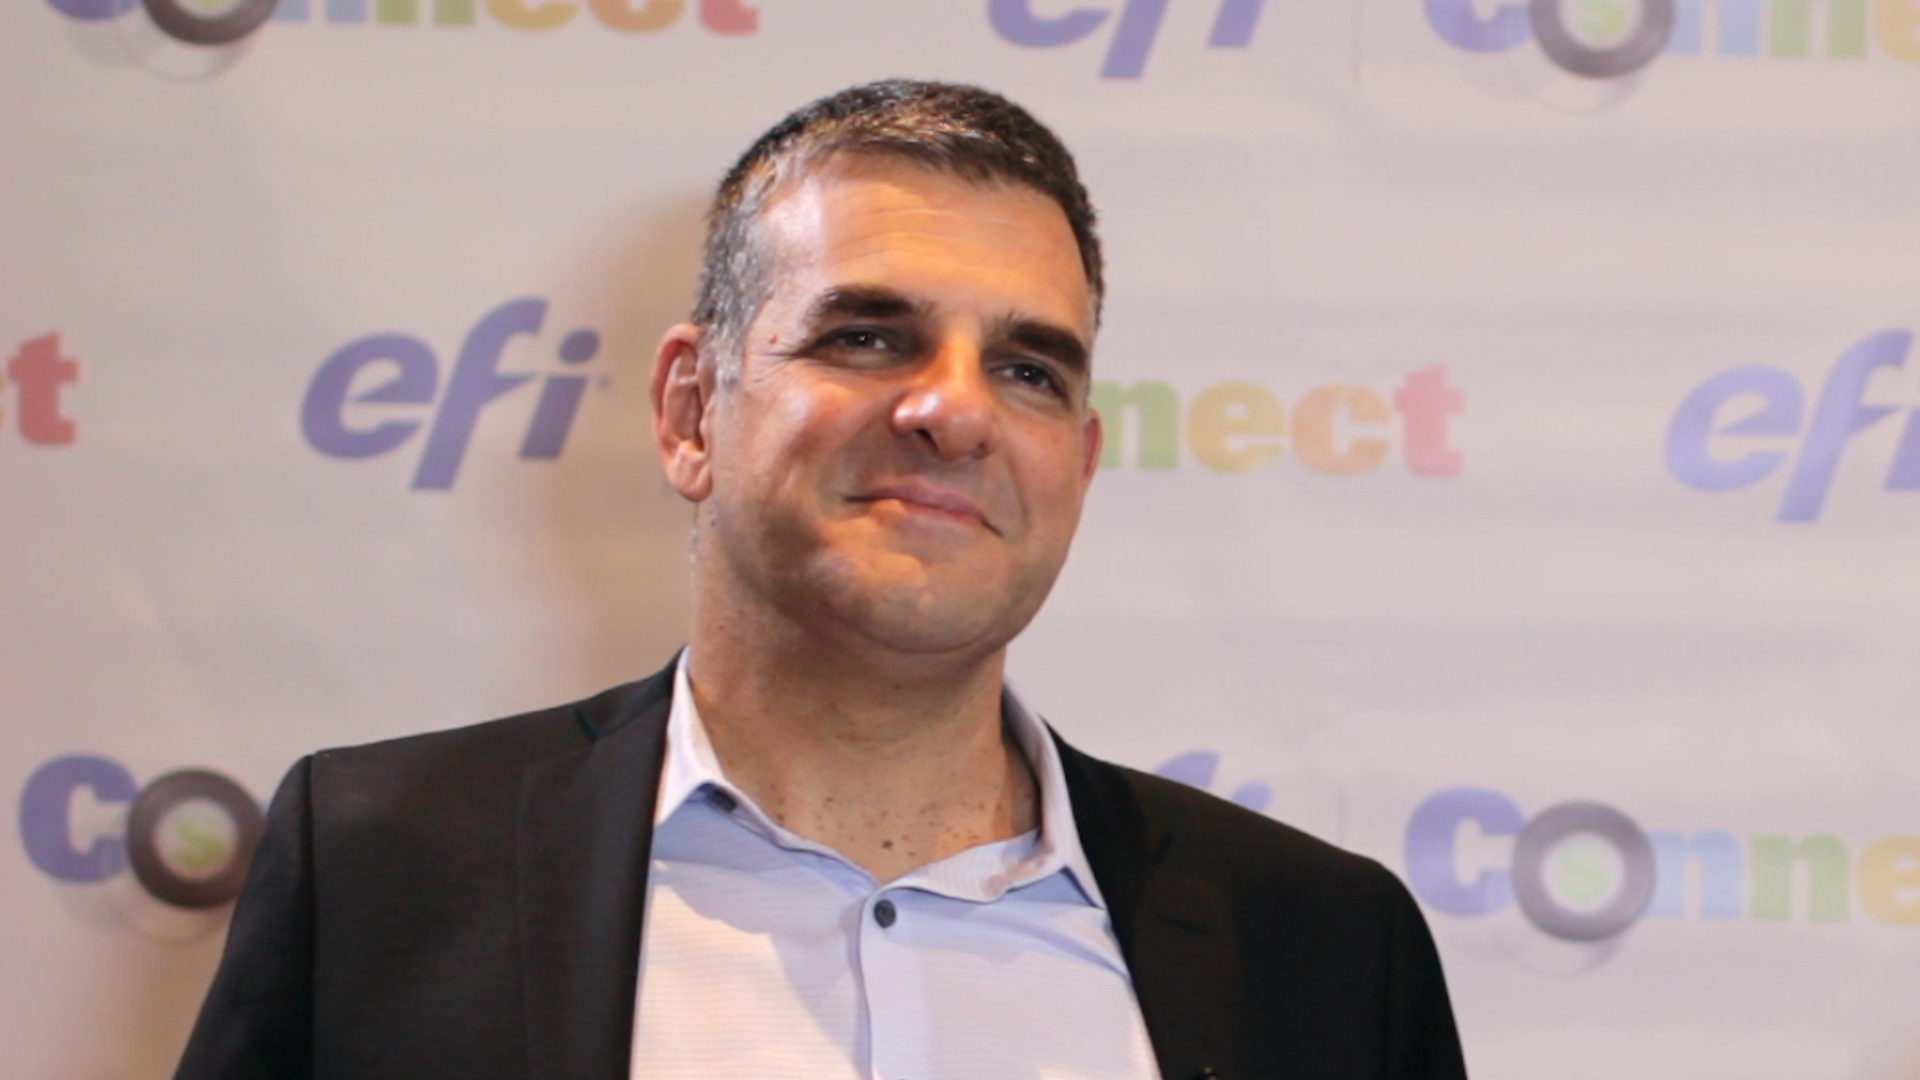 Video preview: EFI's Guy Gecht on EFI Connect and the Imaging of Things